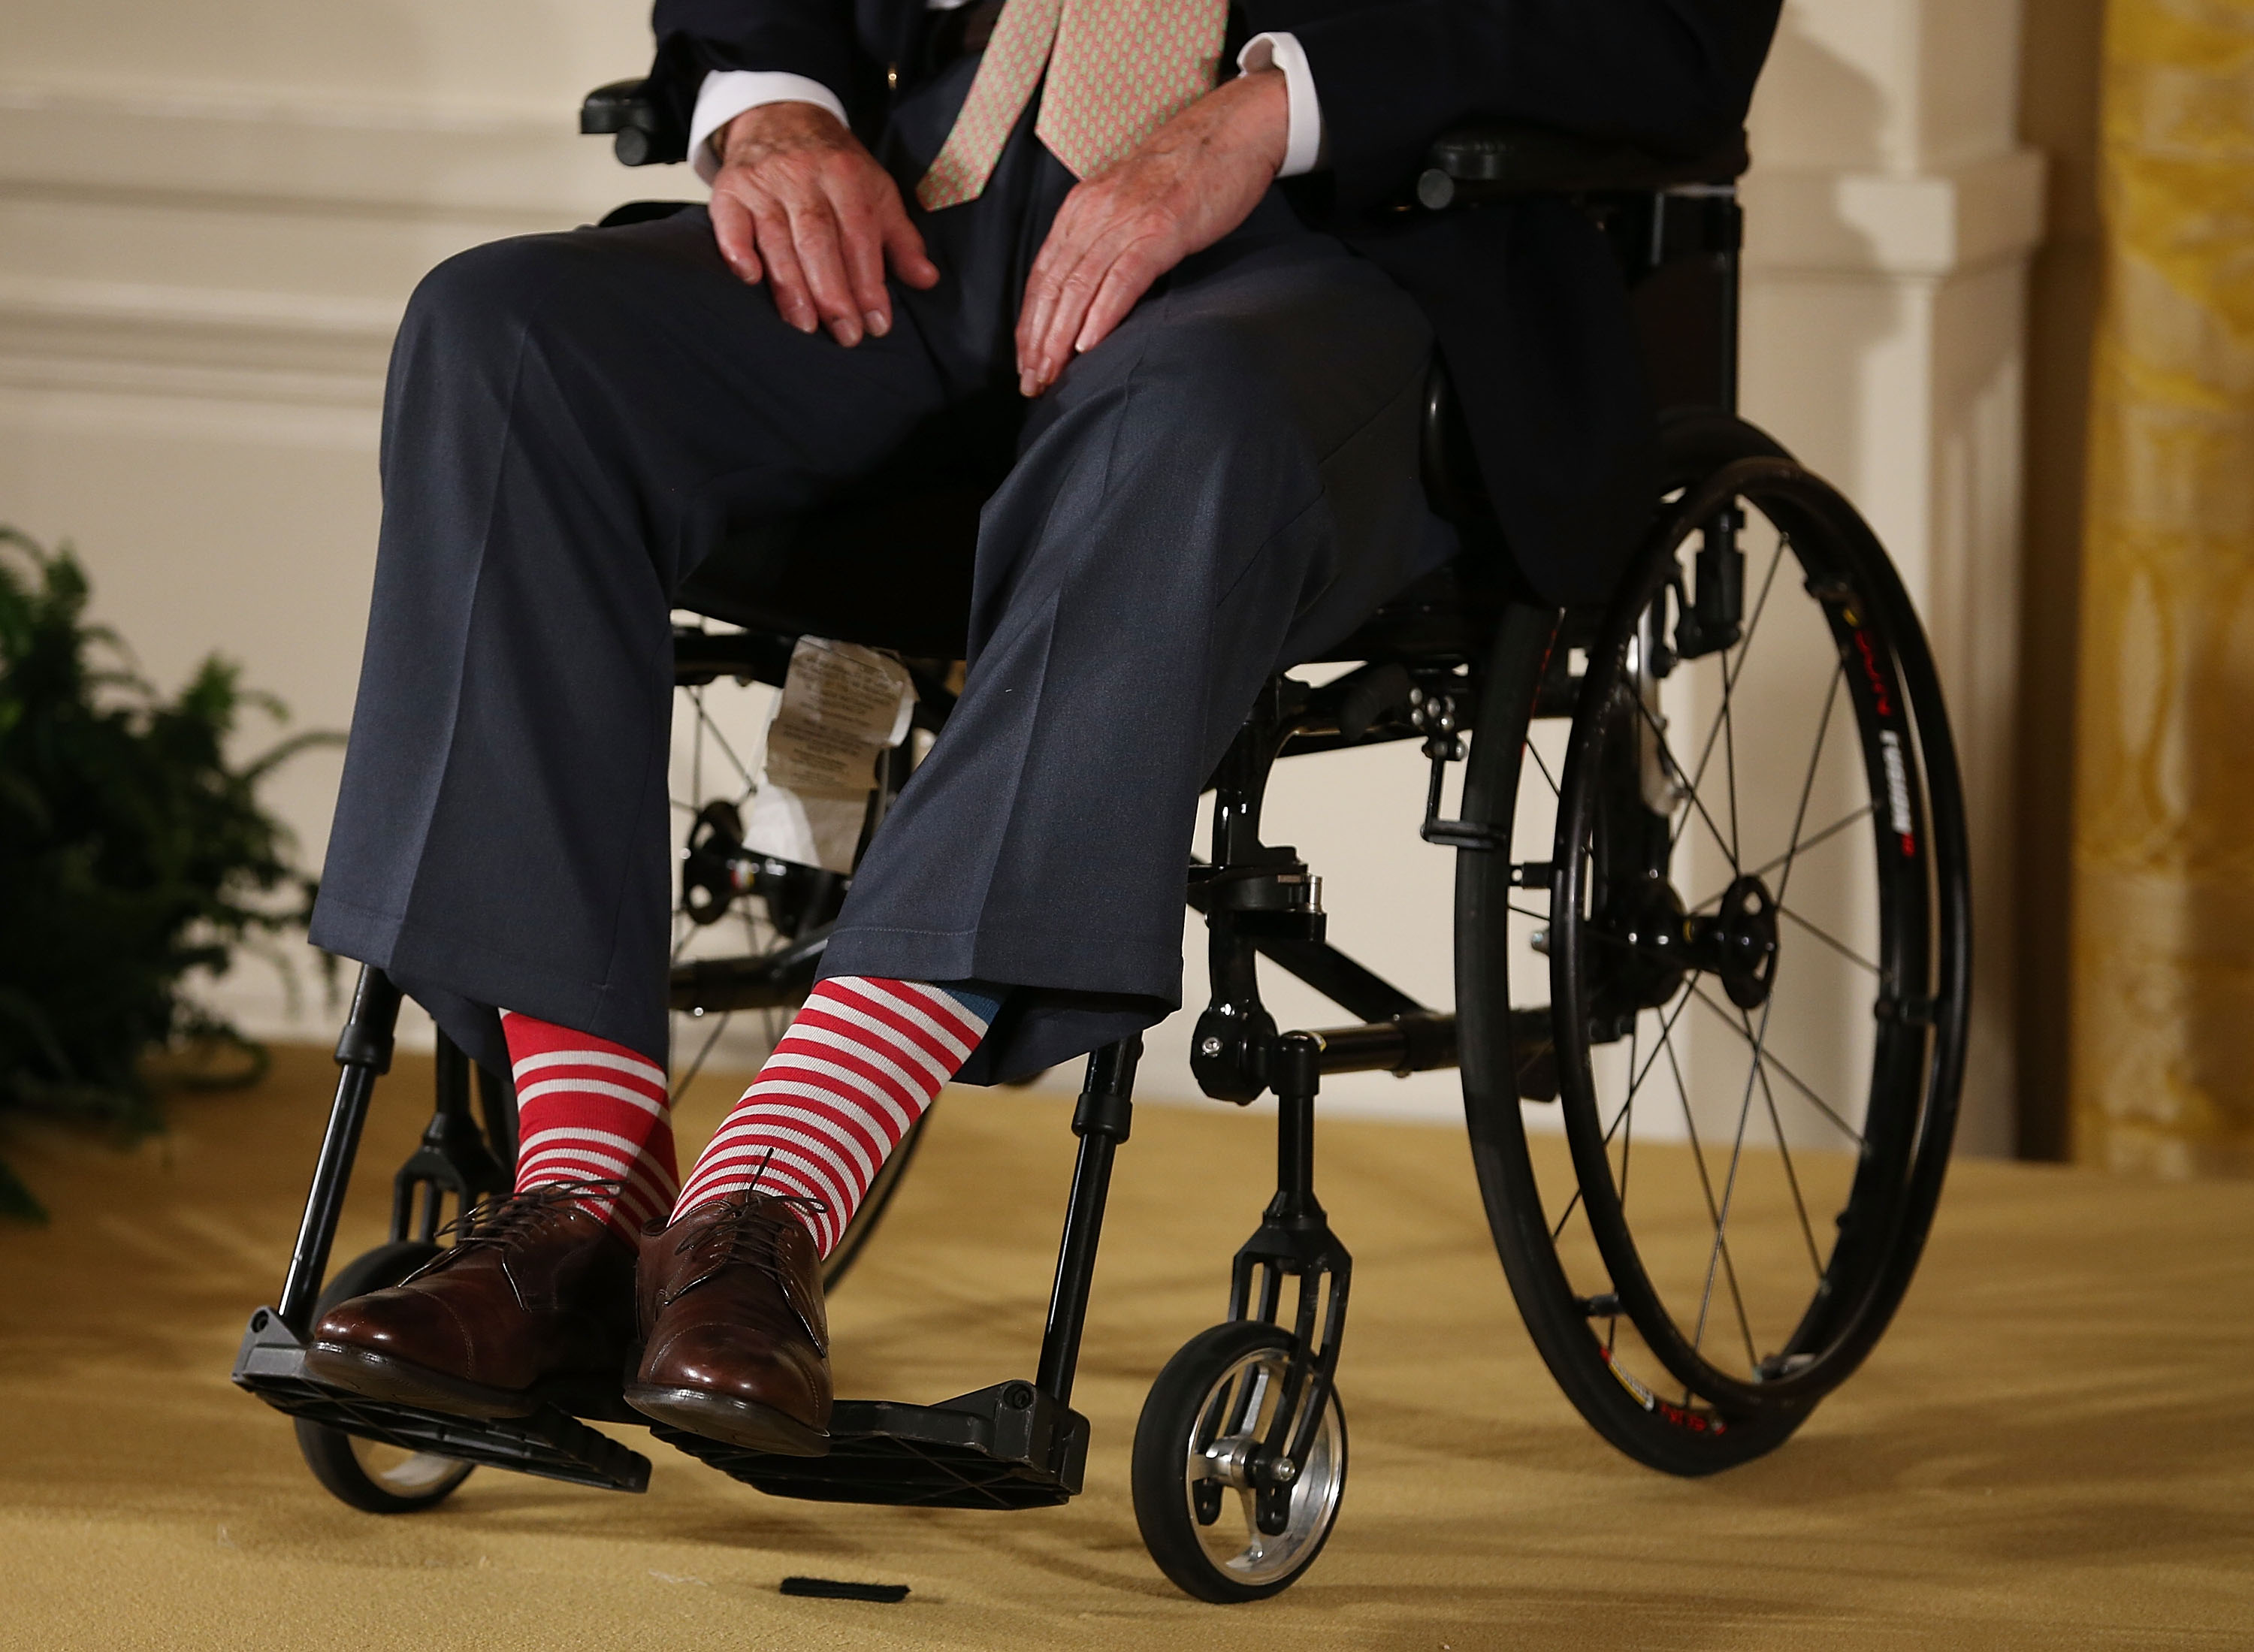 Former President George H. W. Bush wears red stripped socks as he sits in a wheelchair during an event in the East Room at the White House, July 15, 2013 in Washington, DC. Bush joined President Obama in hosting the event to honor the 5,000th Daily Point of Light Award winner.  (Photo by Mark Wilson/Getty Images)